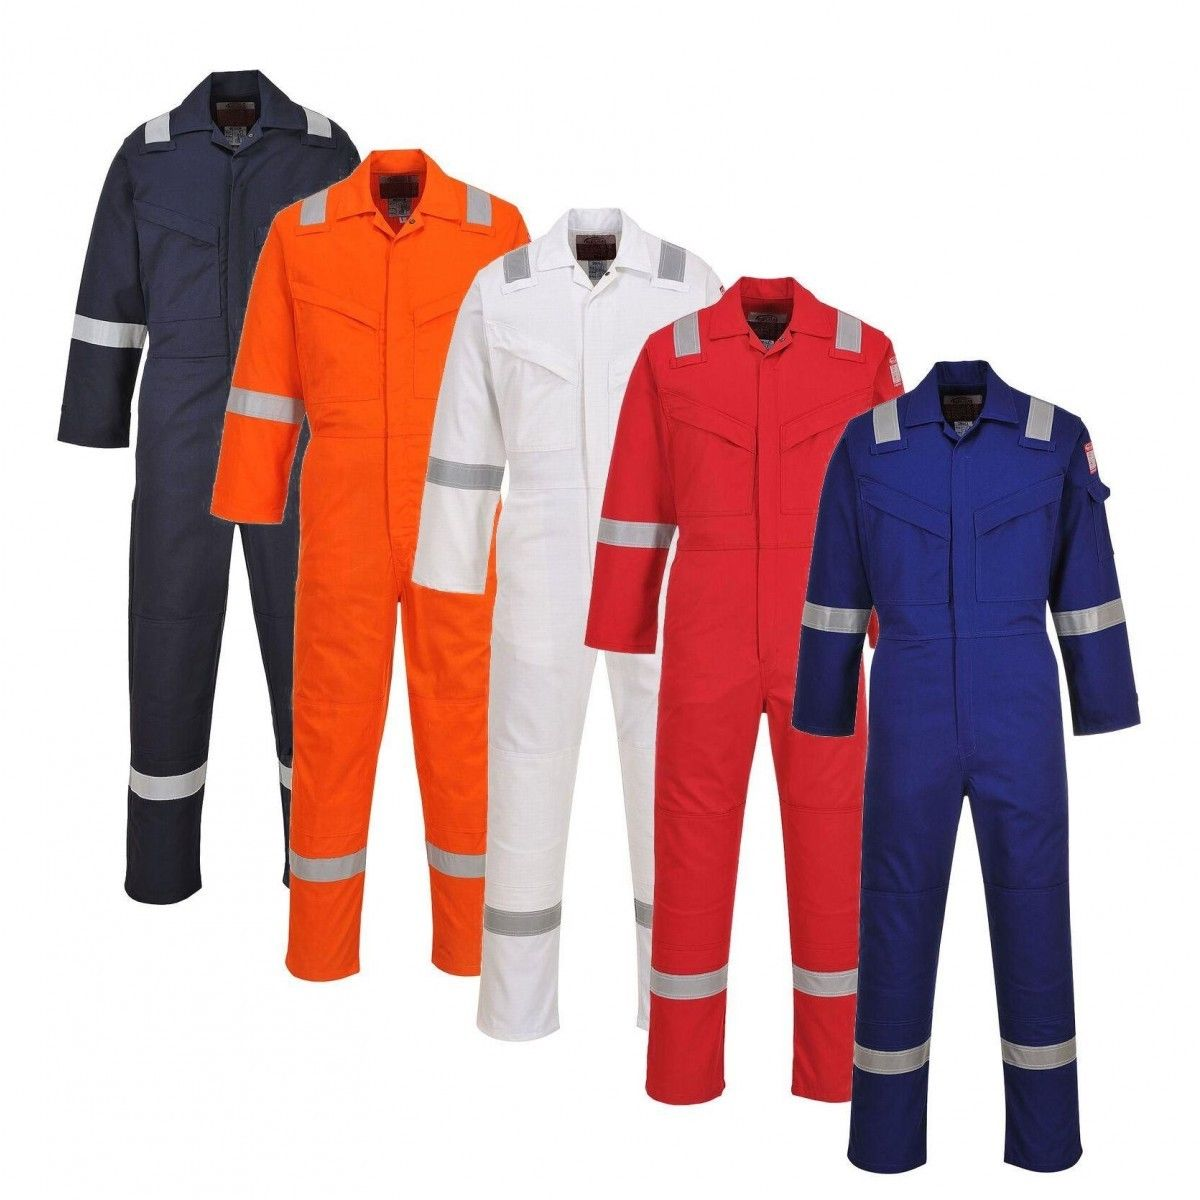 100% COTTON COVERALL, WITH REFLECTIVE STRIPES